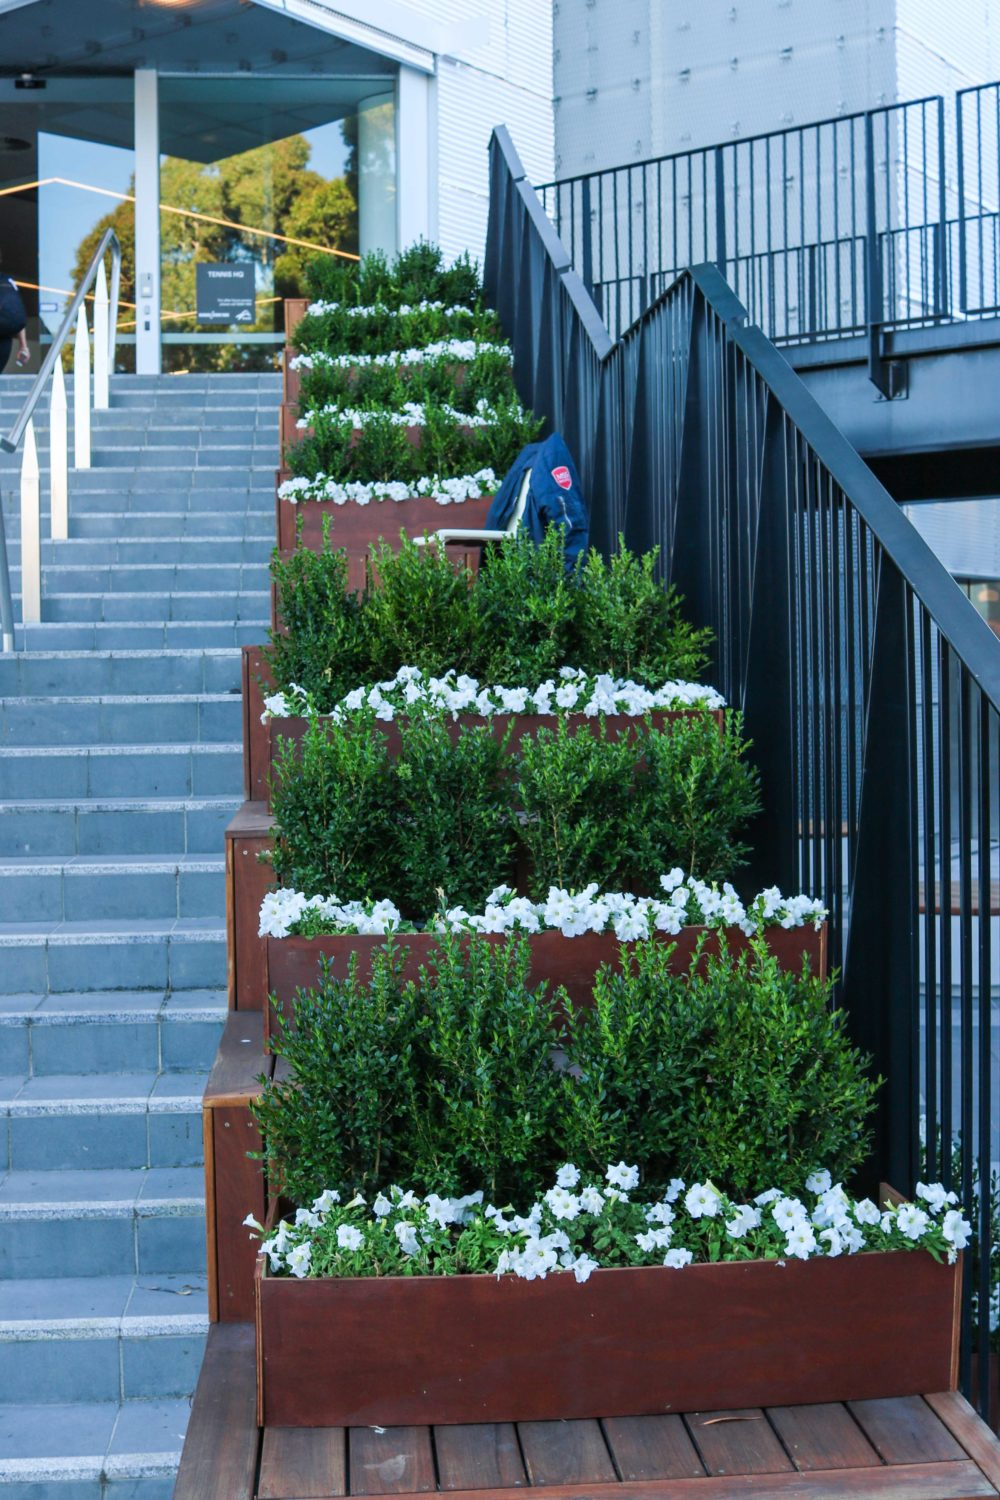 Stair petunia buxus edging